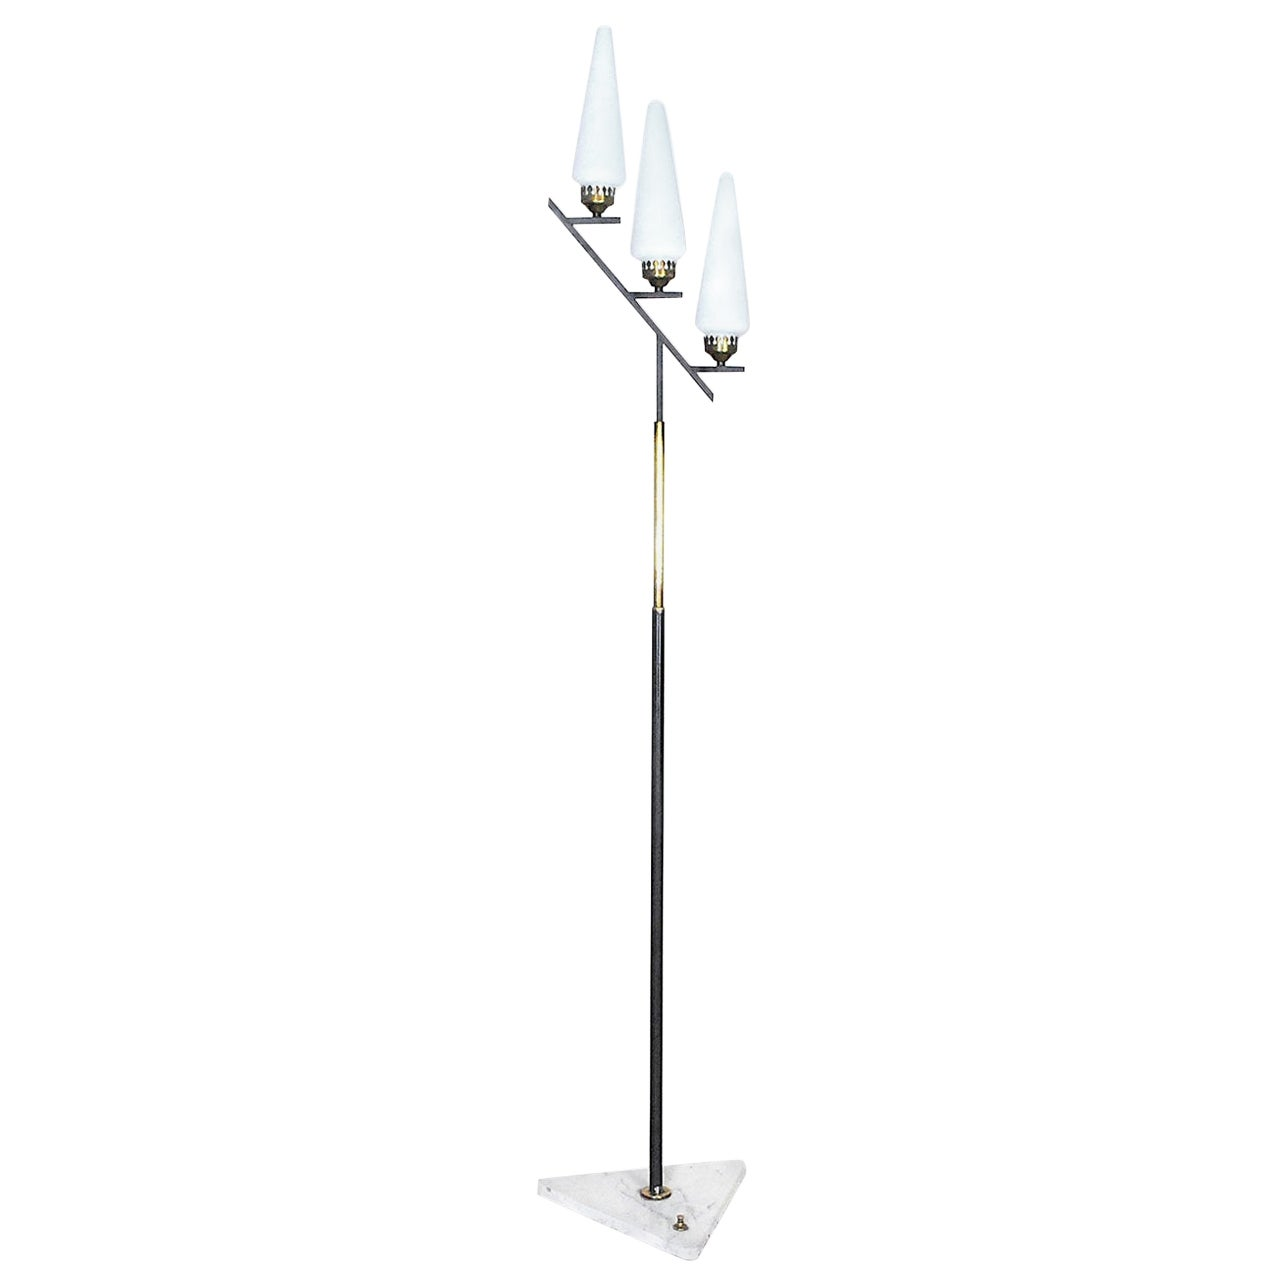 Stilnovo Italian Midcentury Floor Lamp in Brass and Opaline from the 1950s